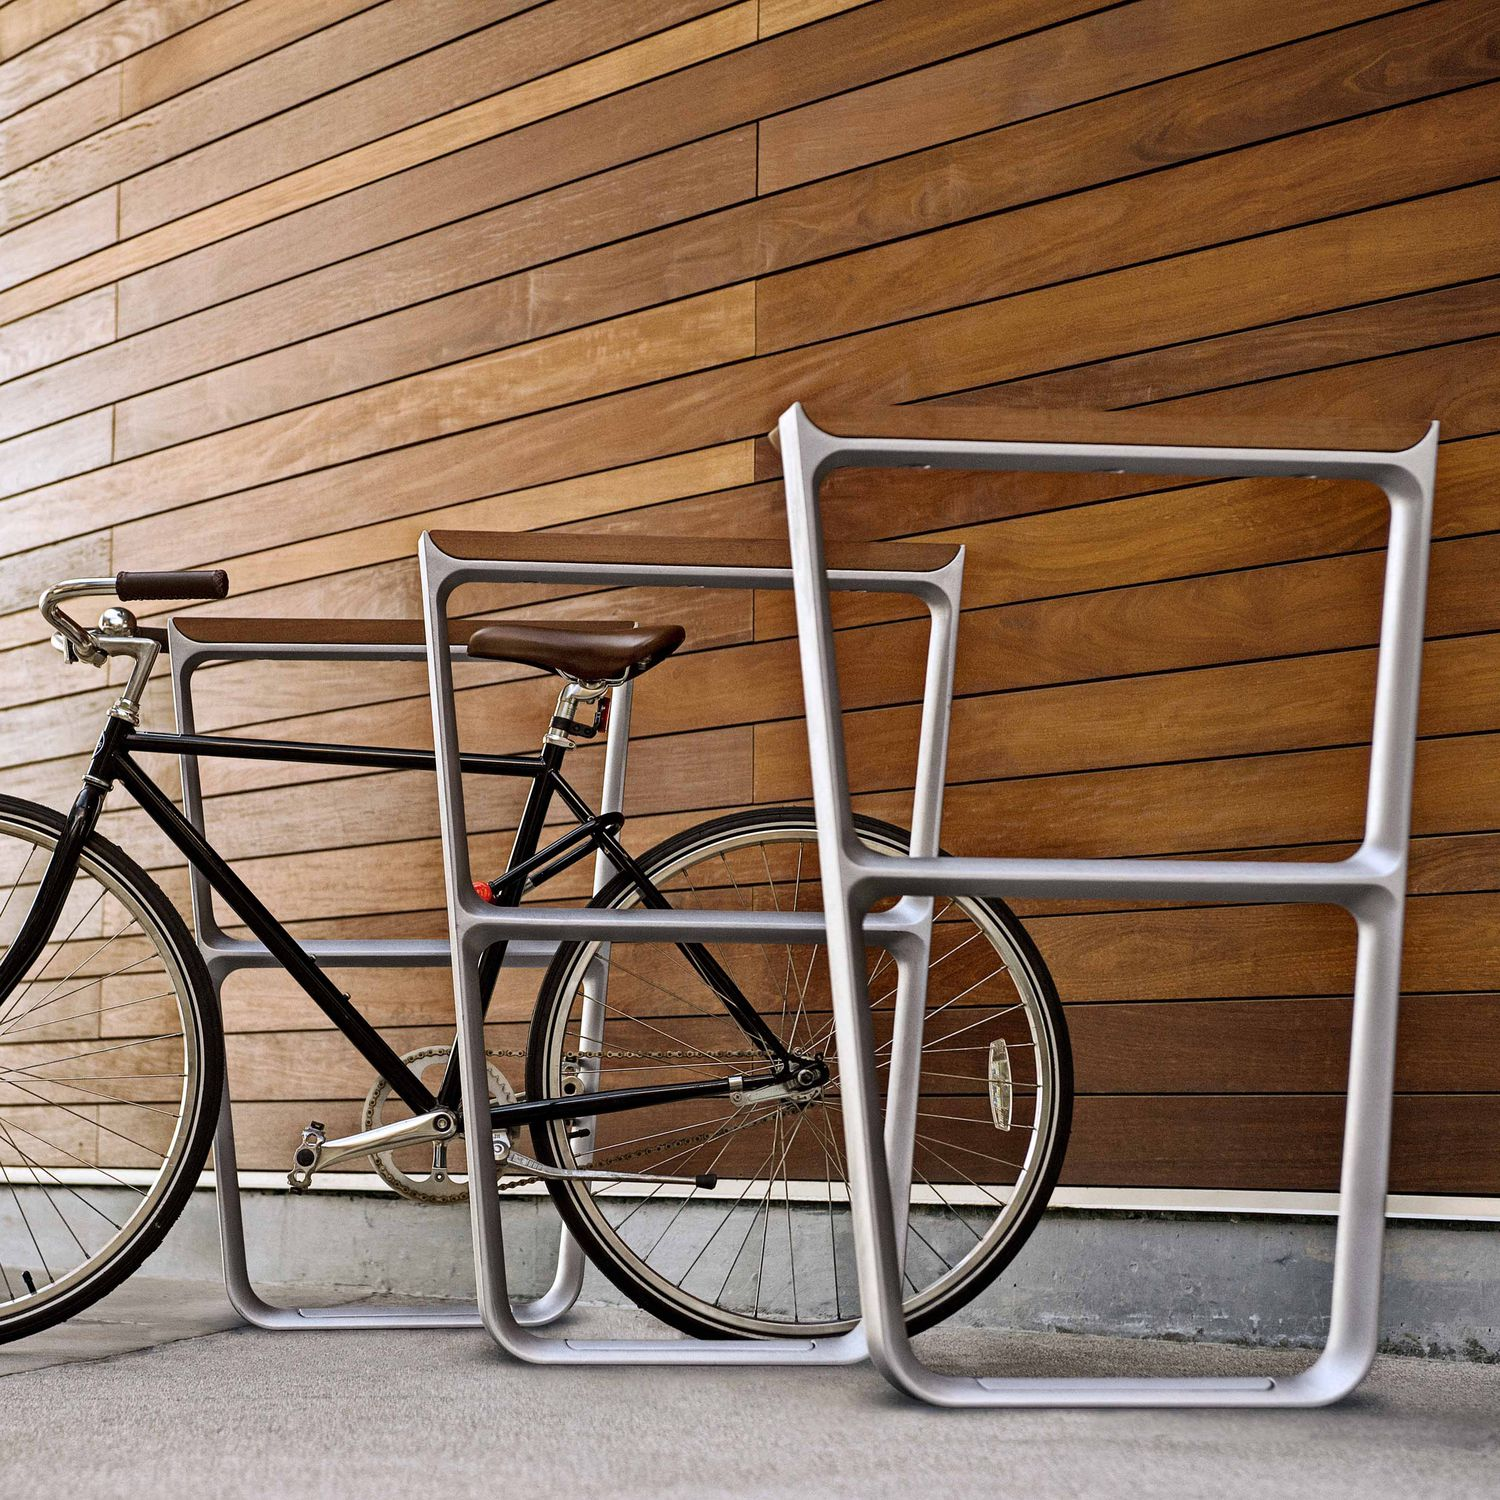 about design home for on ideas with styles interior nice remodeling aluminum bike great rack most attractive remodel lovely decoration